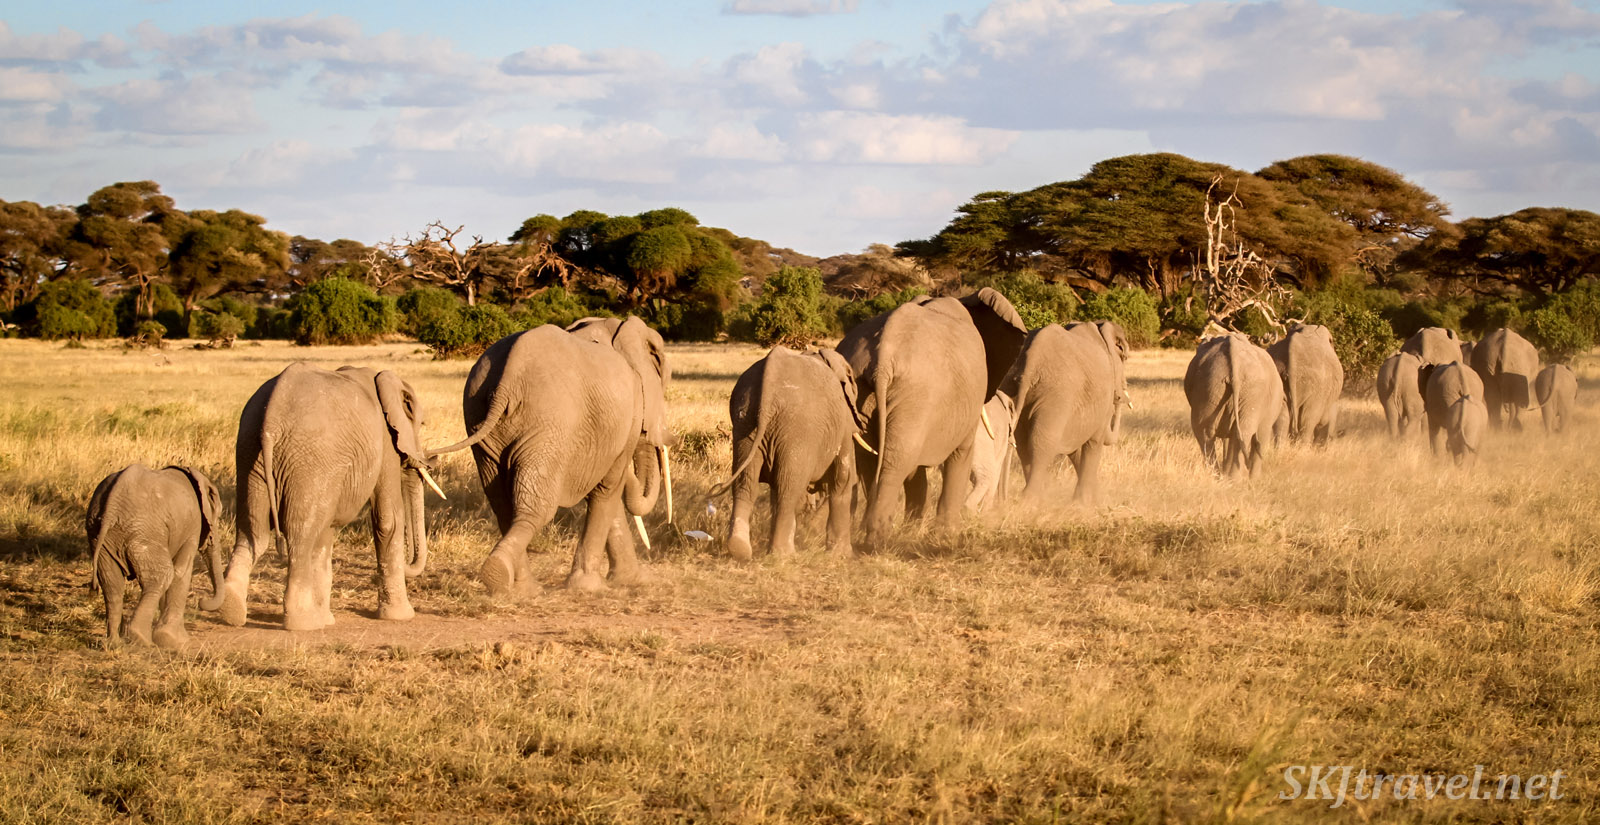 Elephants disappearing into the forest late in the day, Amboseli, Kenya.